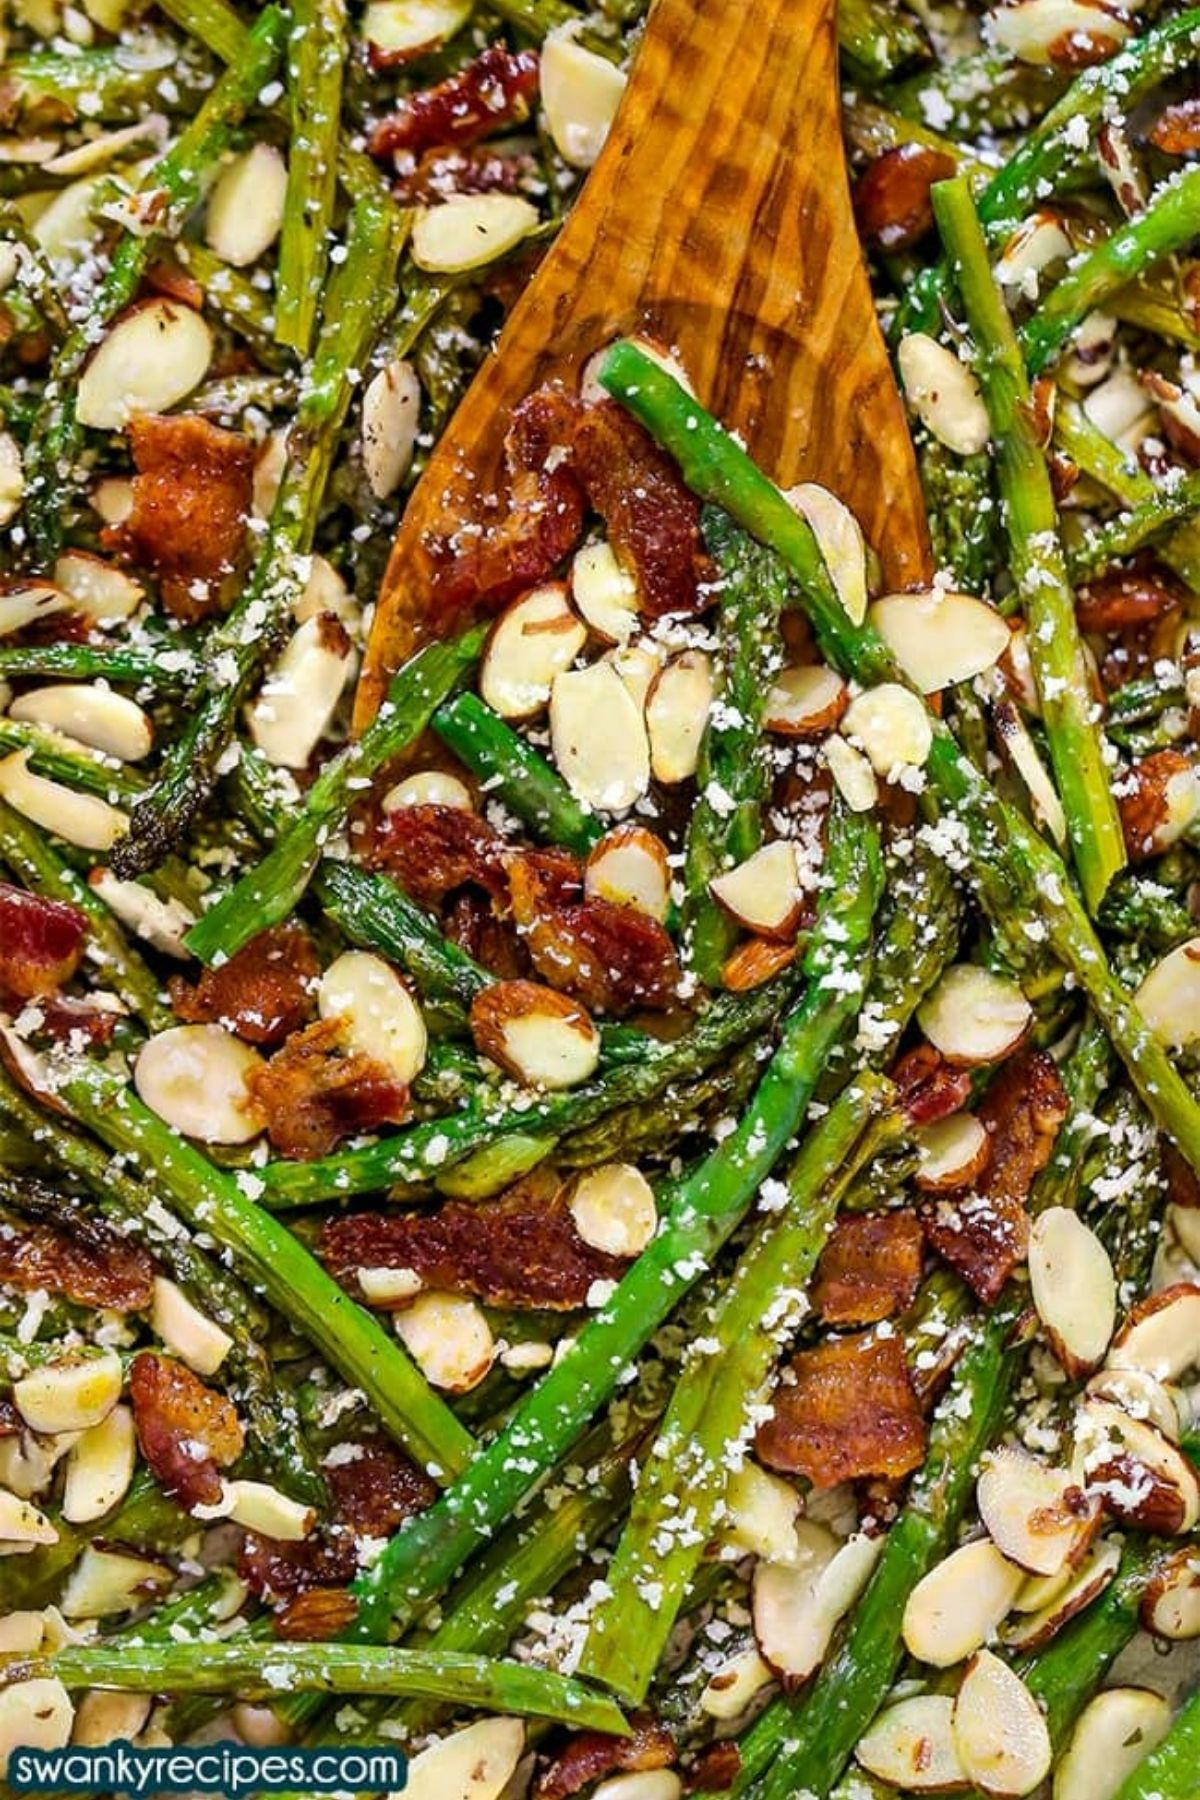 Wooden spoon in asparagus mixture with almonds